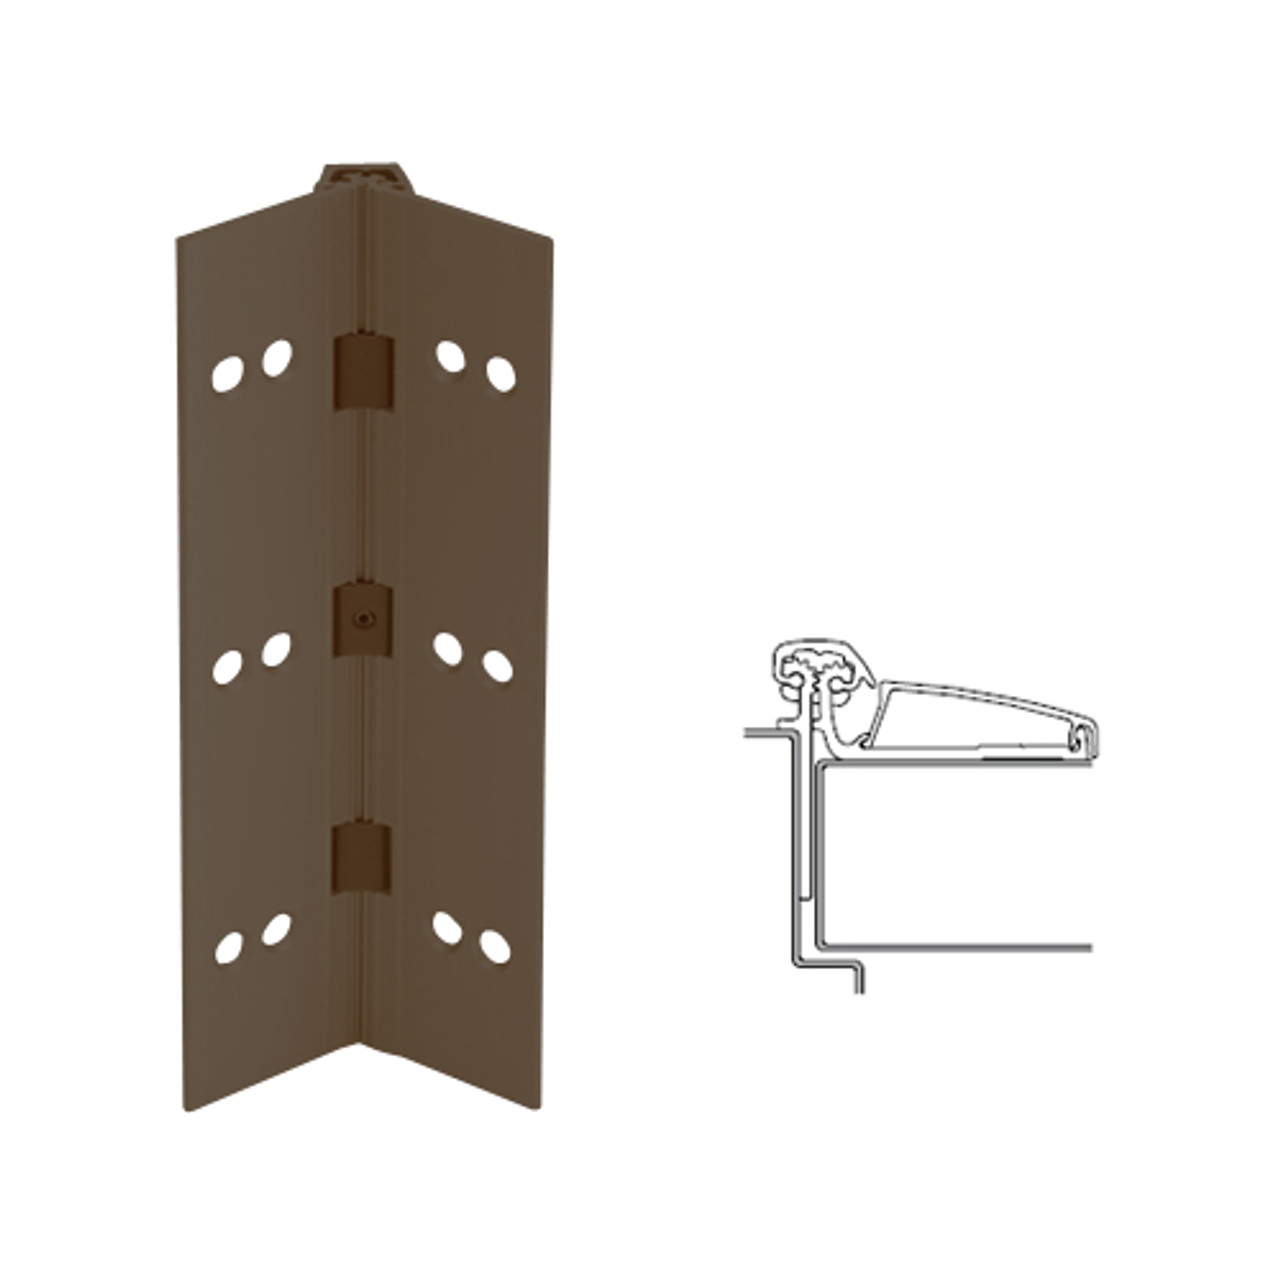 045XY-313AN-83-SECHM IVES Adjustable Half Surface Continuous Geared Hinges with Security Screws - Hex Pin Drive in Dark Bronze Anodized